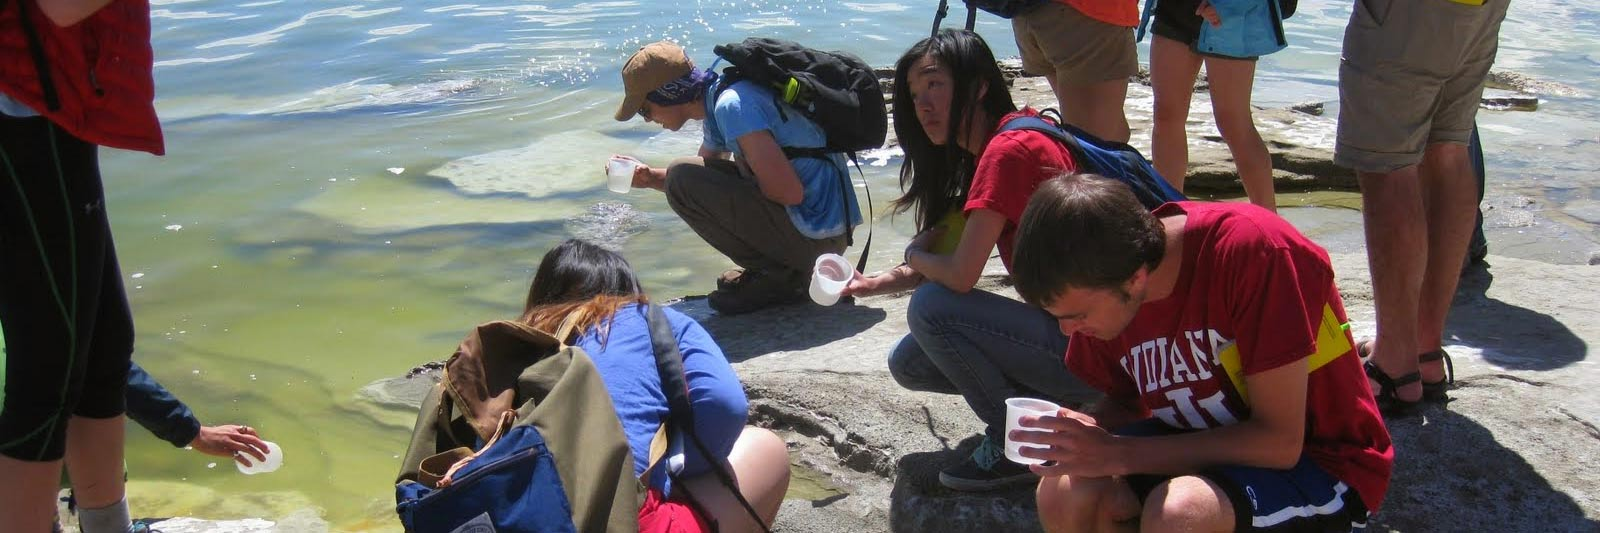 Students collecting water samples in Sierra Nevada